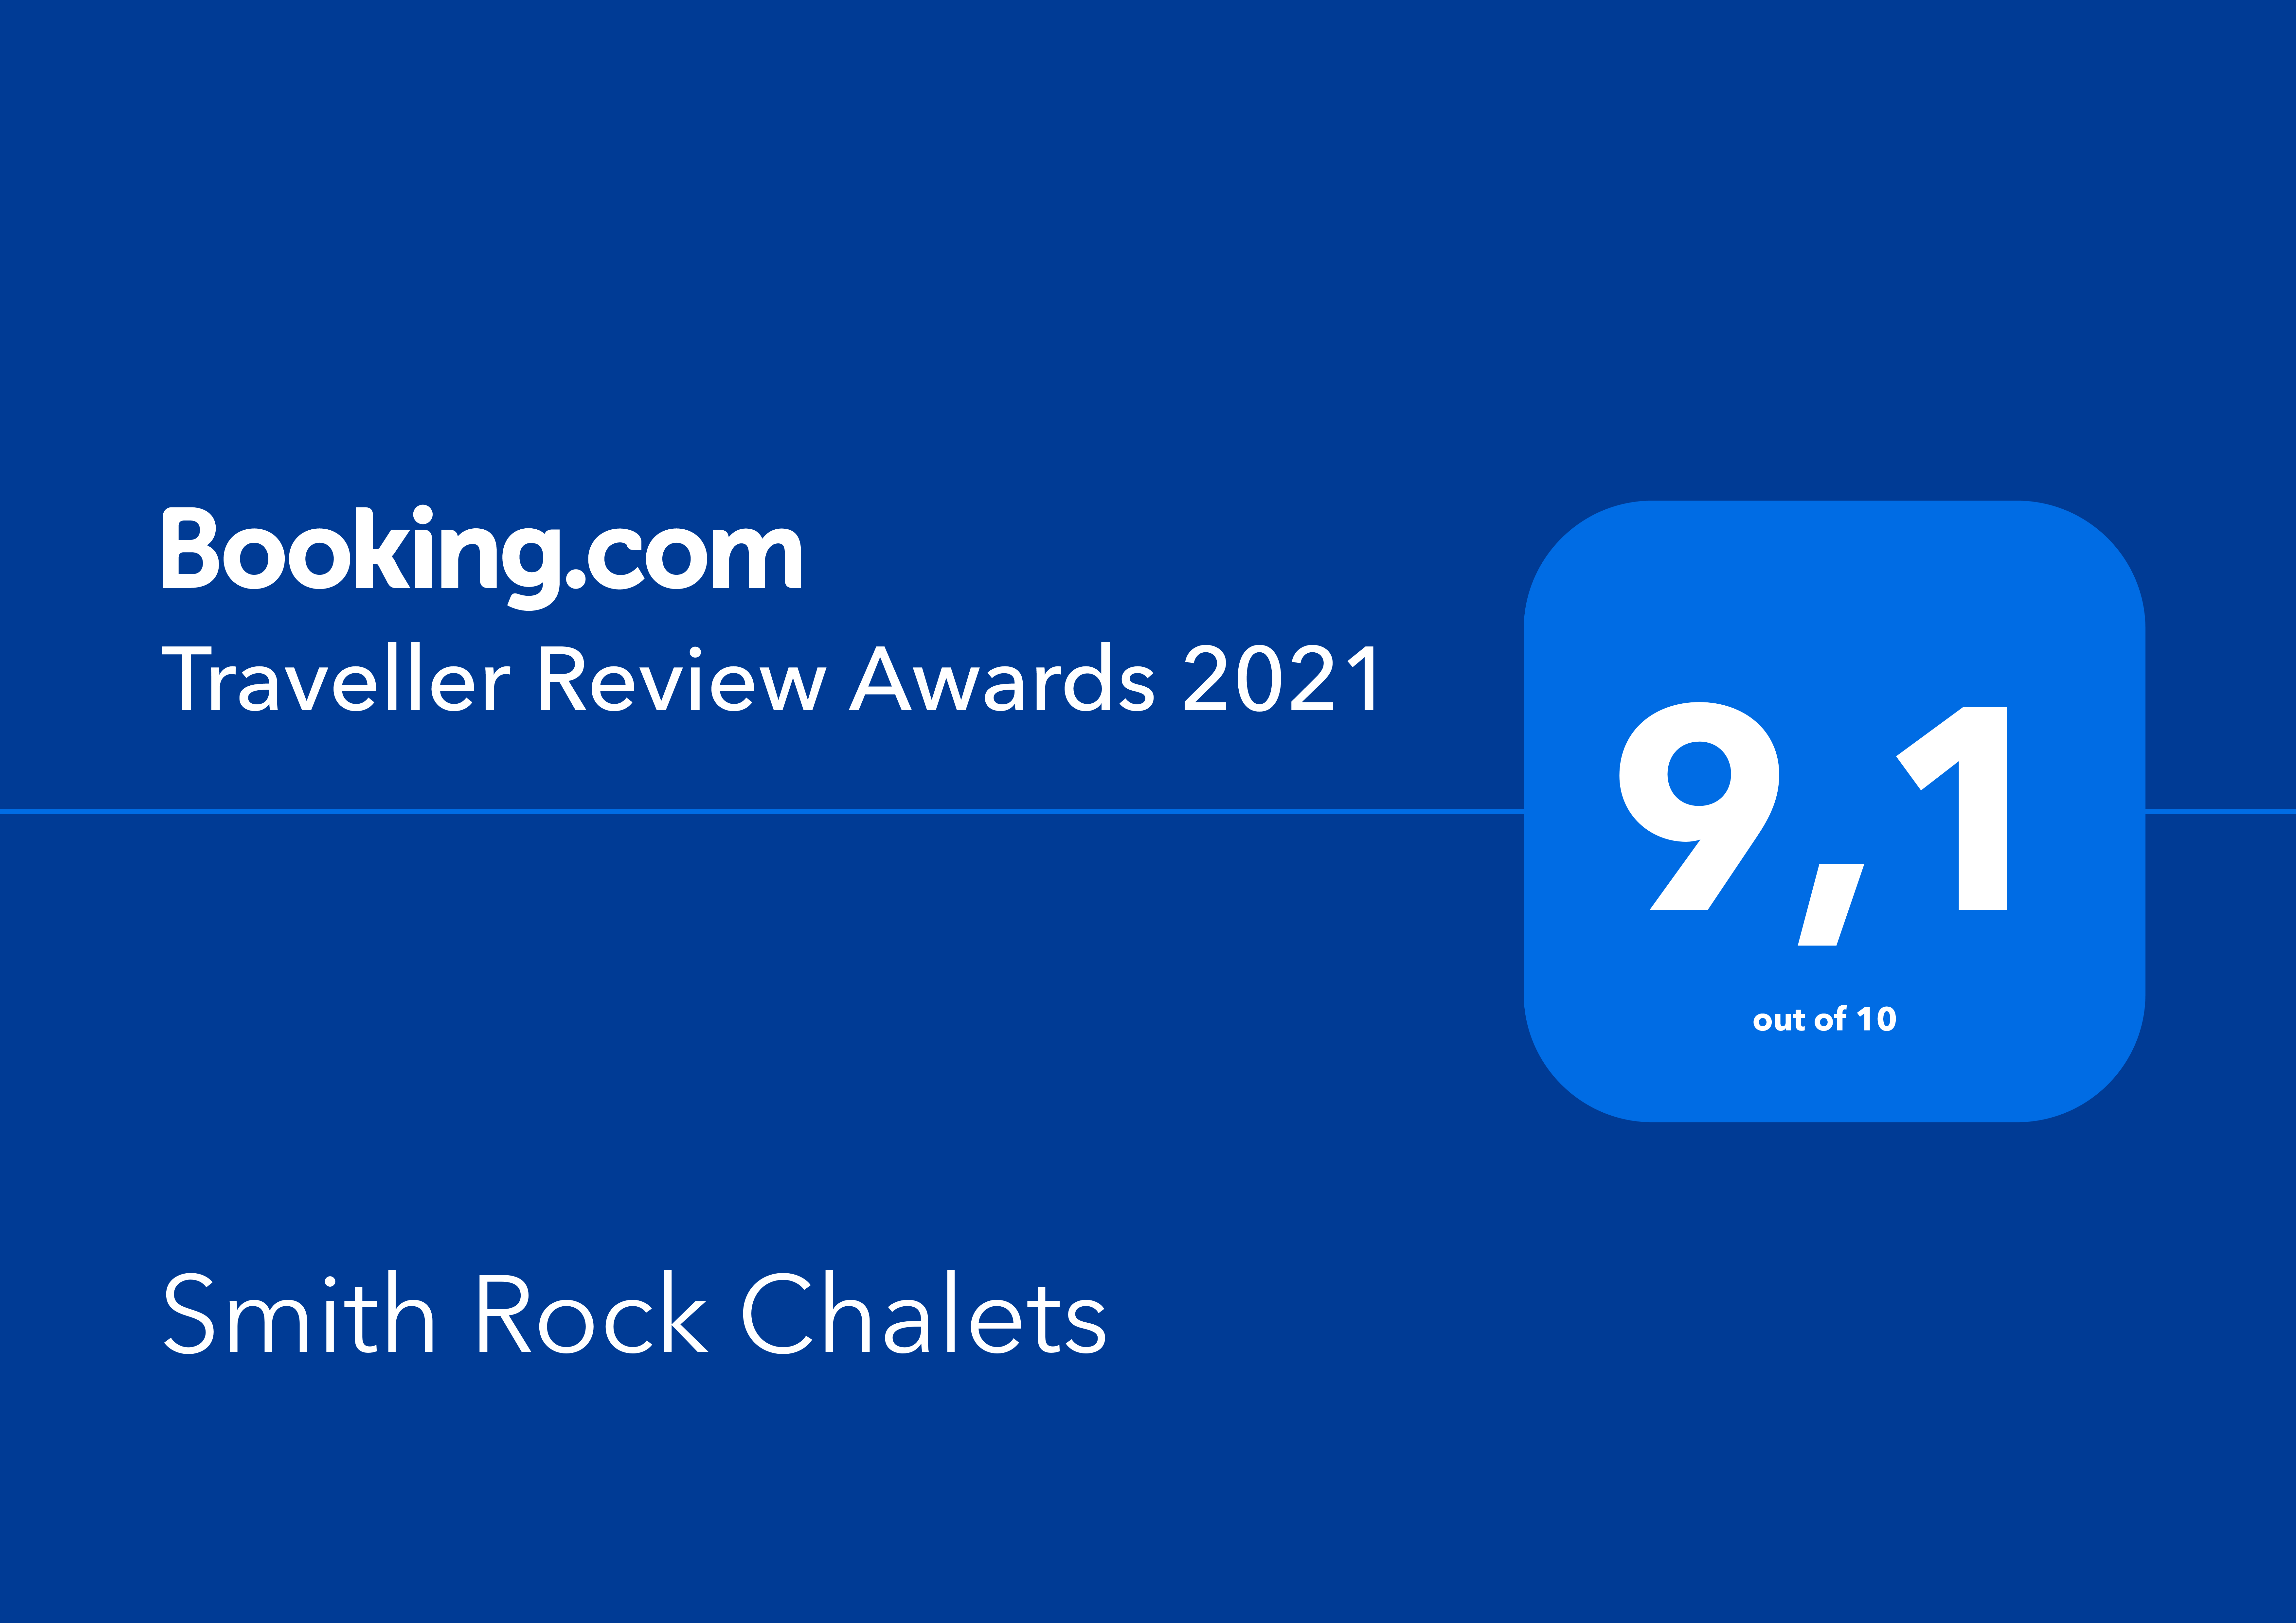 #TravellerReviewAwards2021